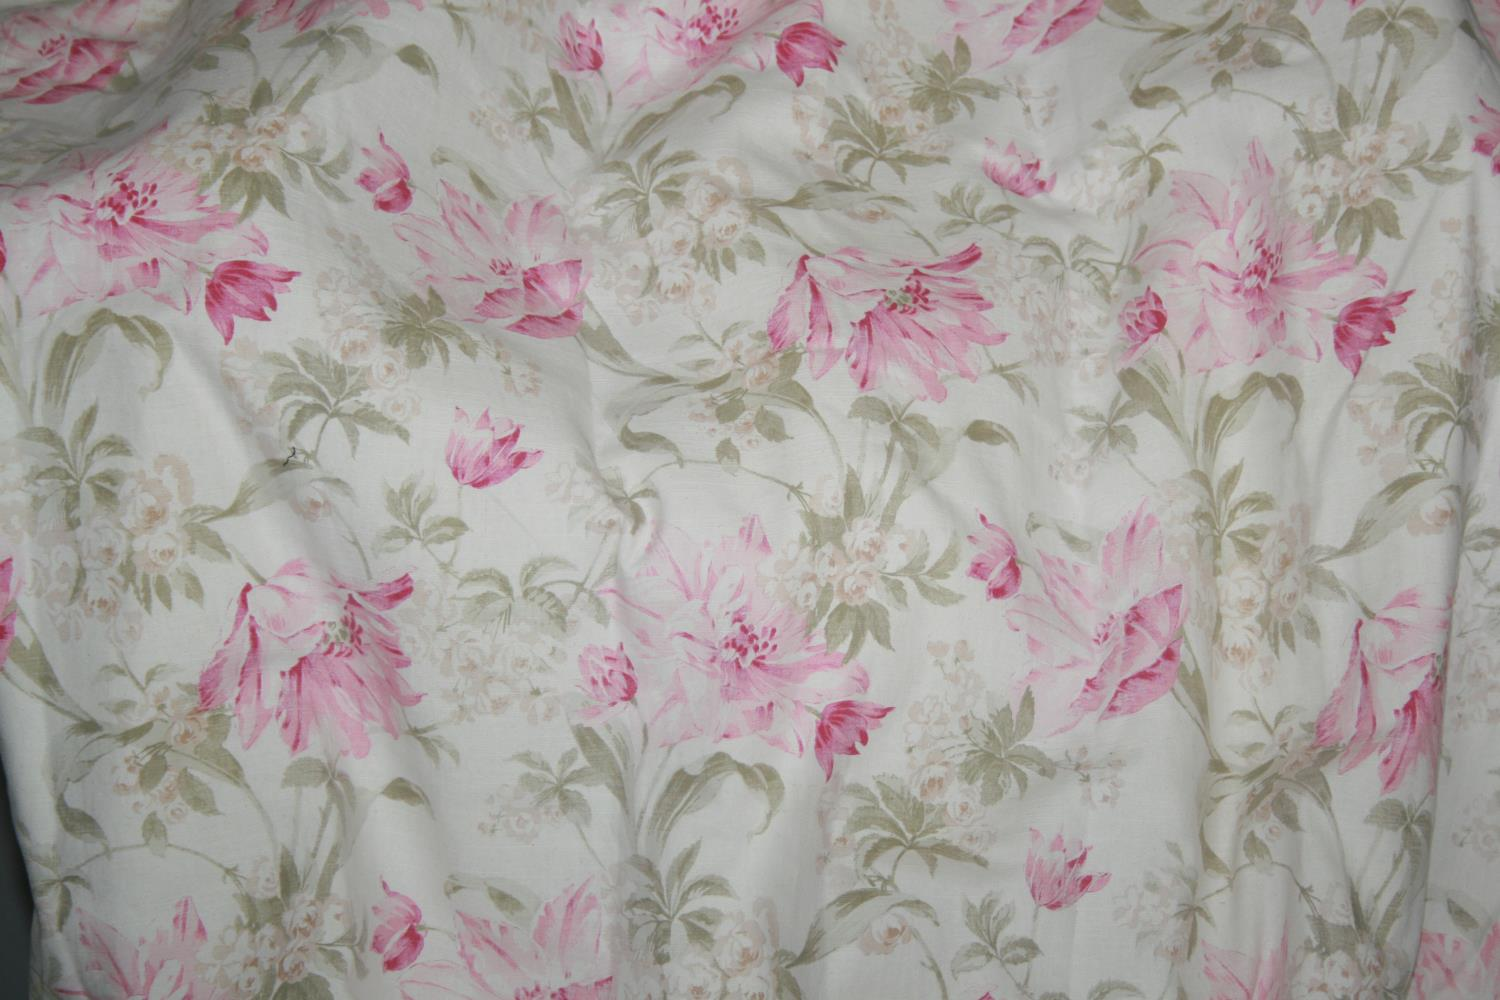 Two pairs lined curtains with floral pattern (1st pair lilac colour & 2nd pair pink) 300 W x 260 H - Image 2 of 3